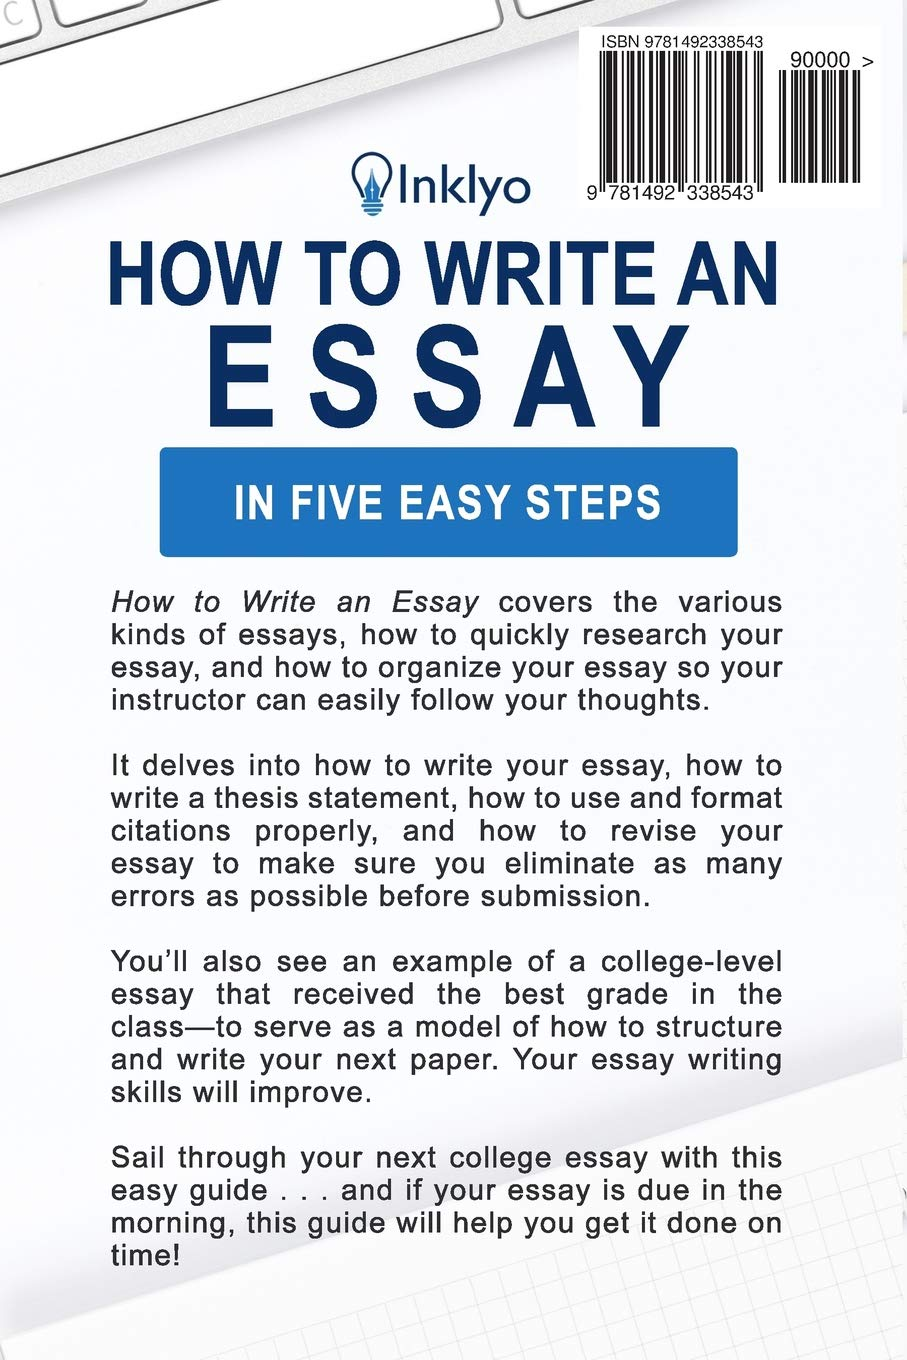 002 How To Write An Essay Example Shocking In Mla Format 2018 Introduction For College Paper Apa Full